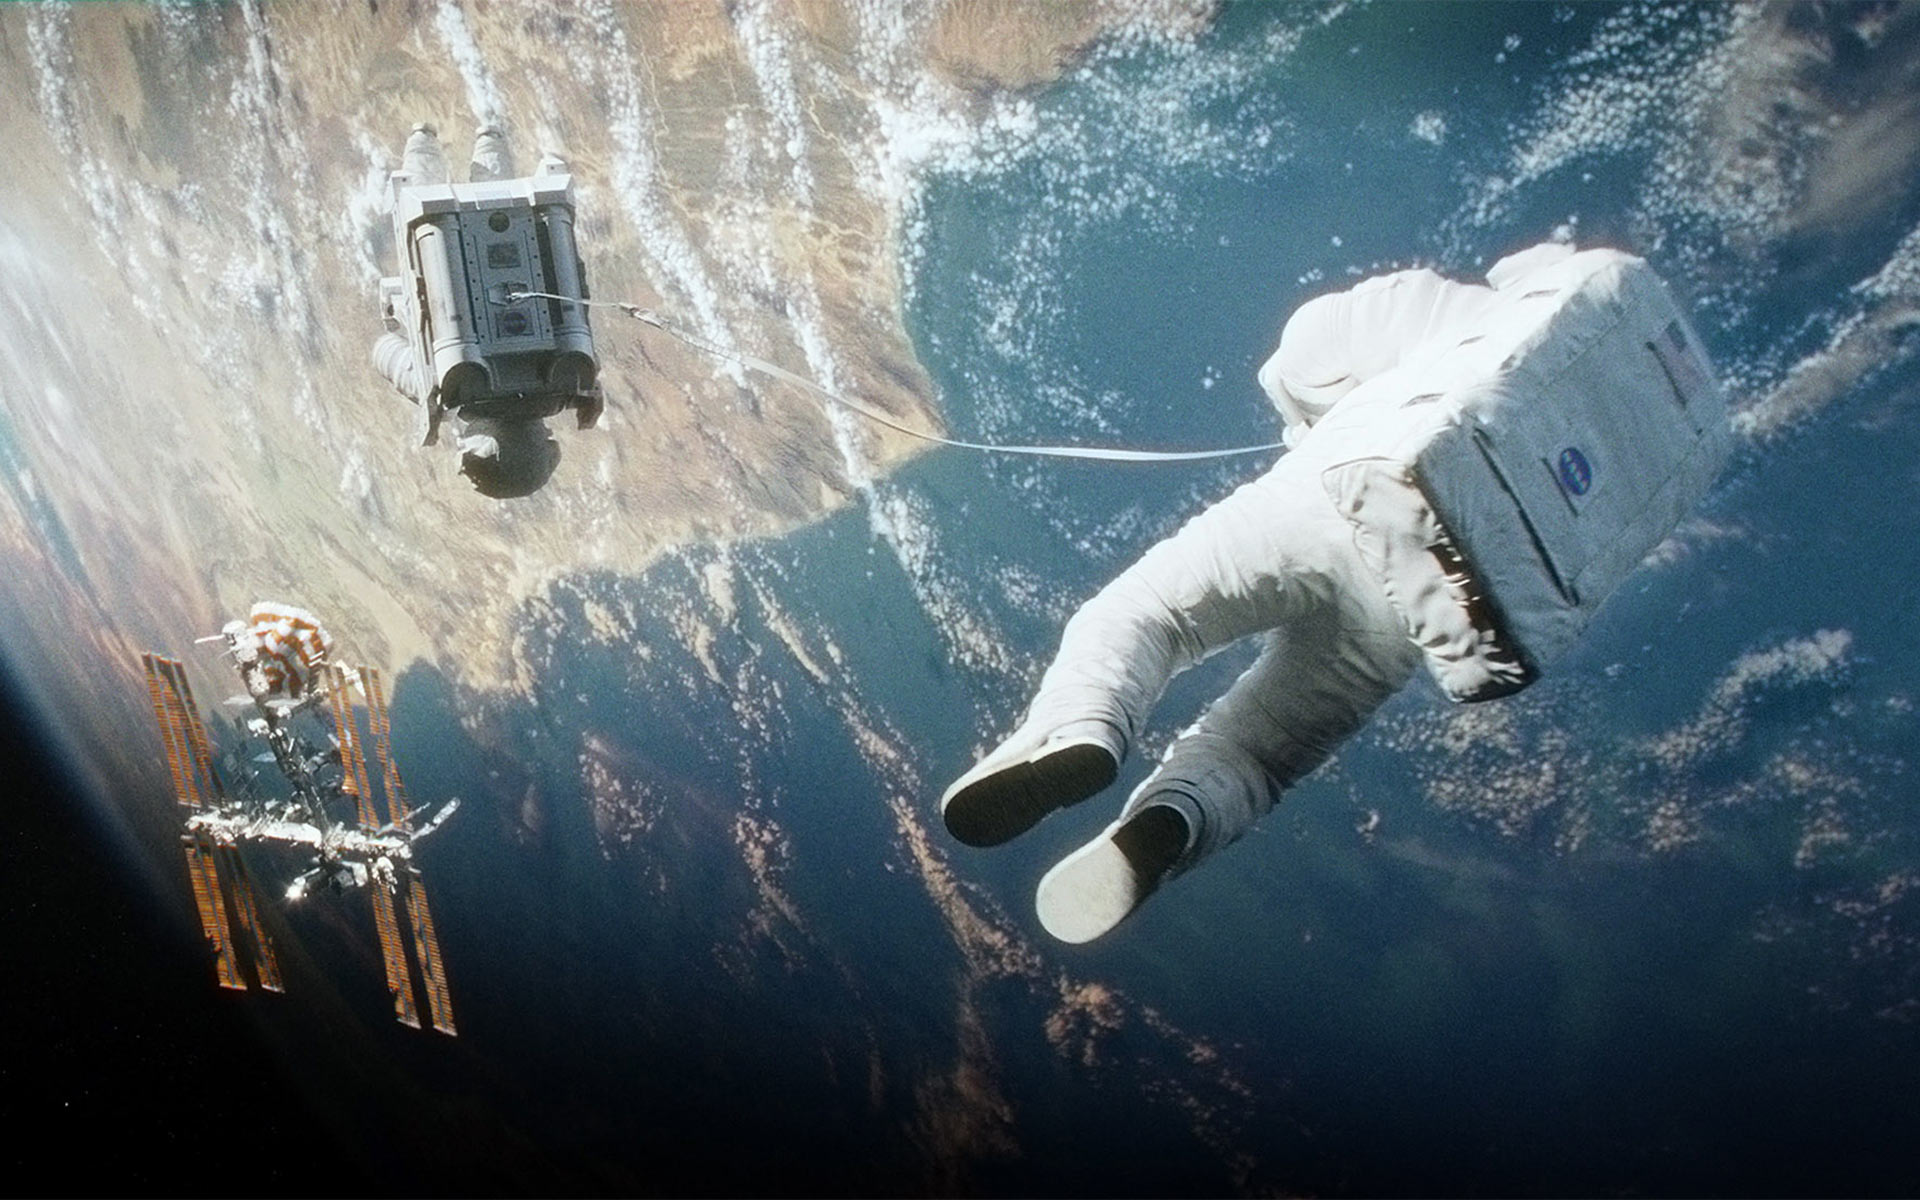 download Wallpapers Movies Gravity Wallpaper [1920x1200] for 1920x1200